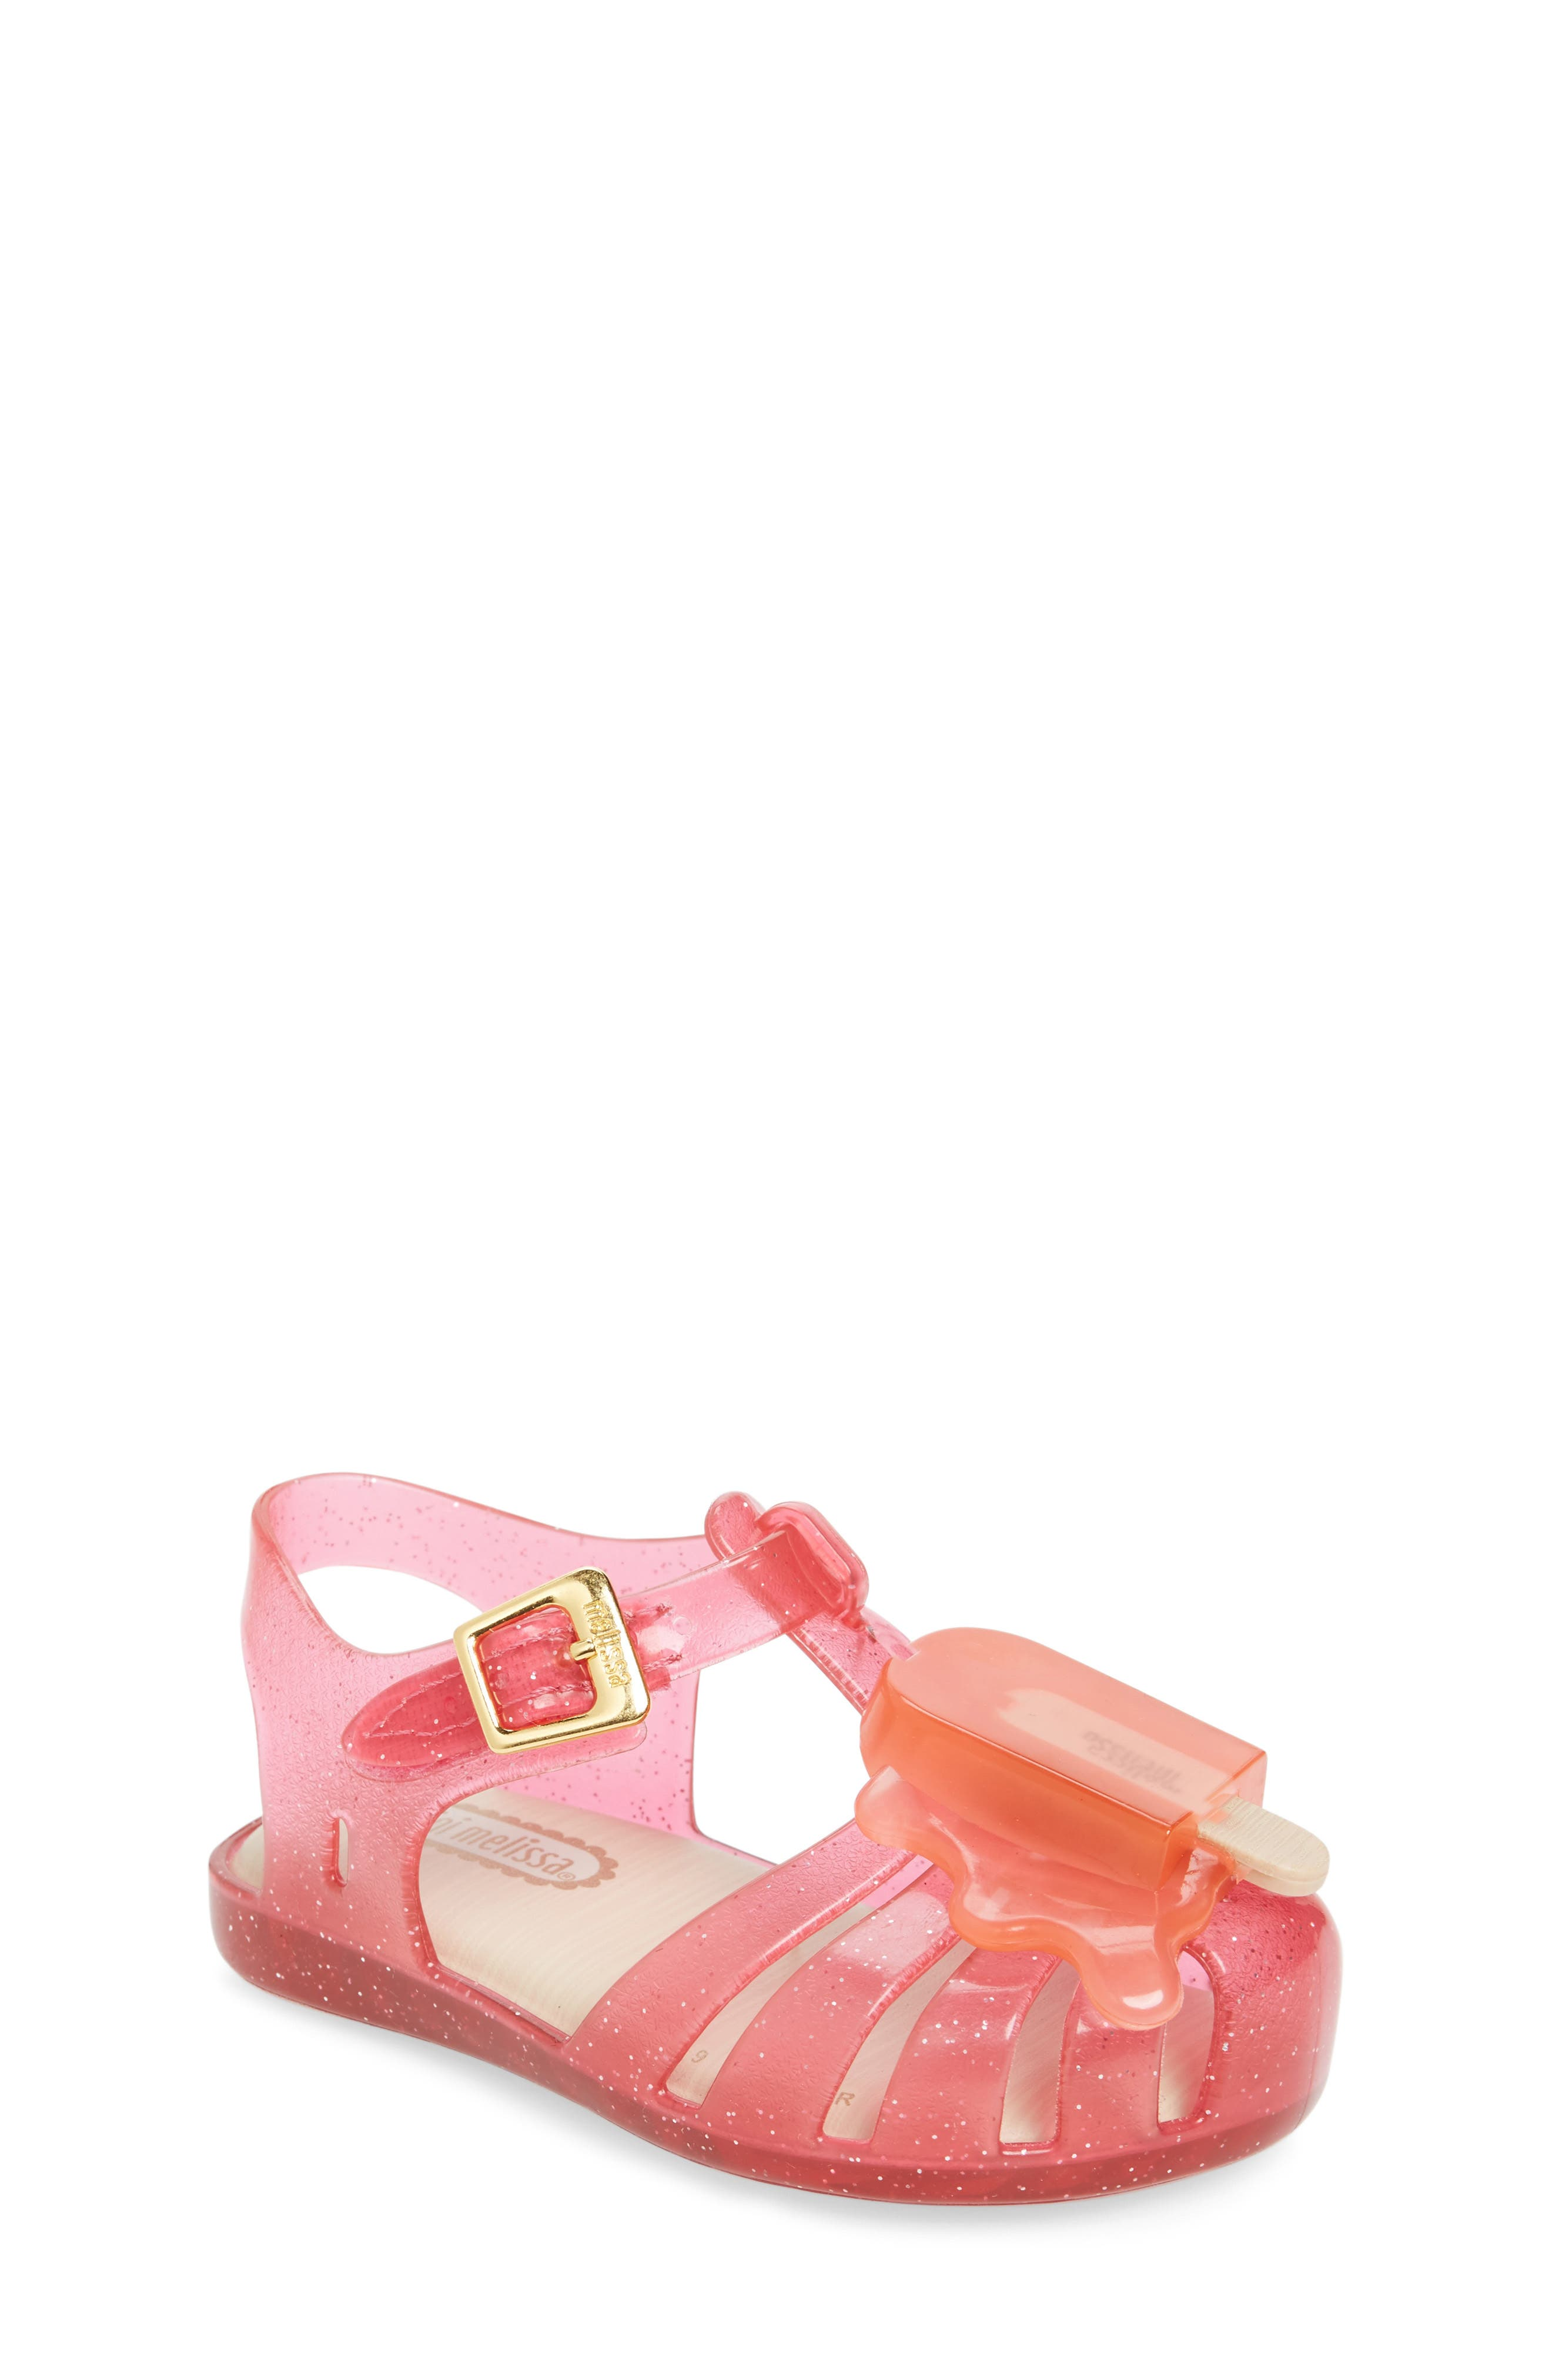 Main Image - Mini Melissa 'Aranha' Mary Jane Sandal (Walker & Toddler)